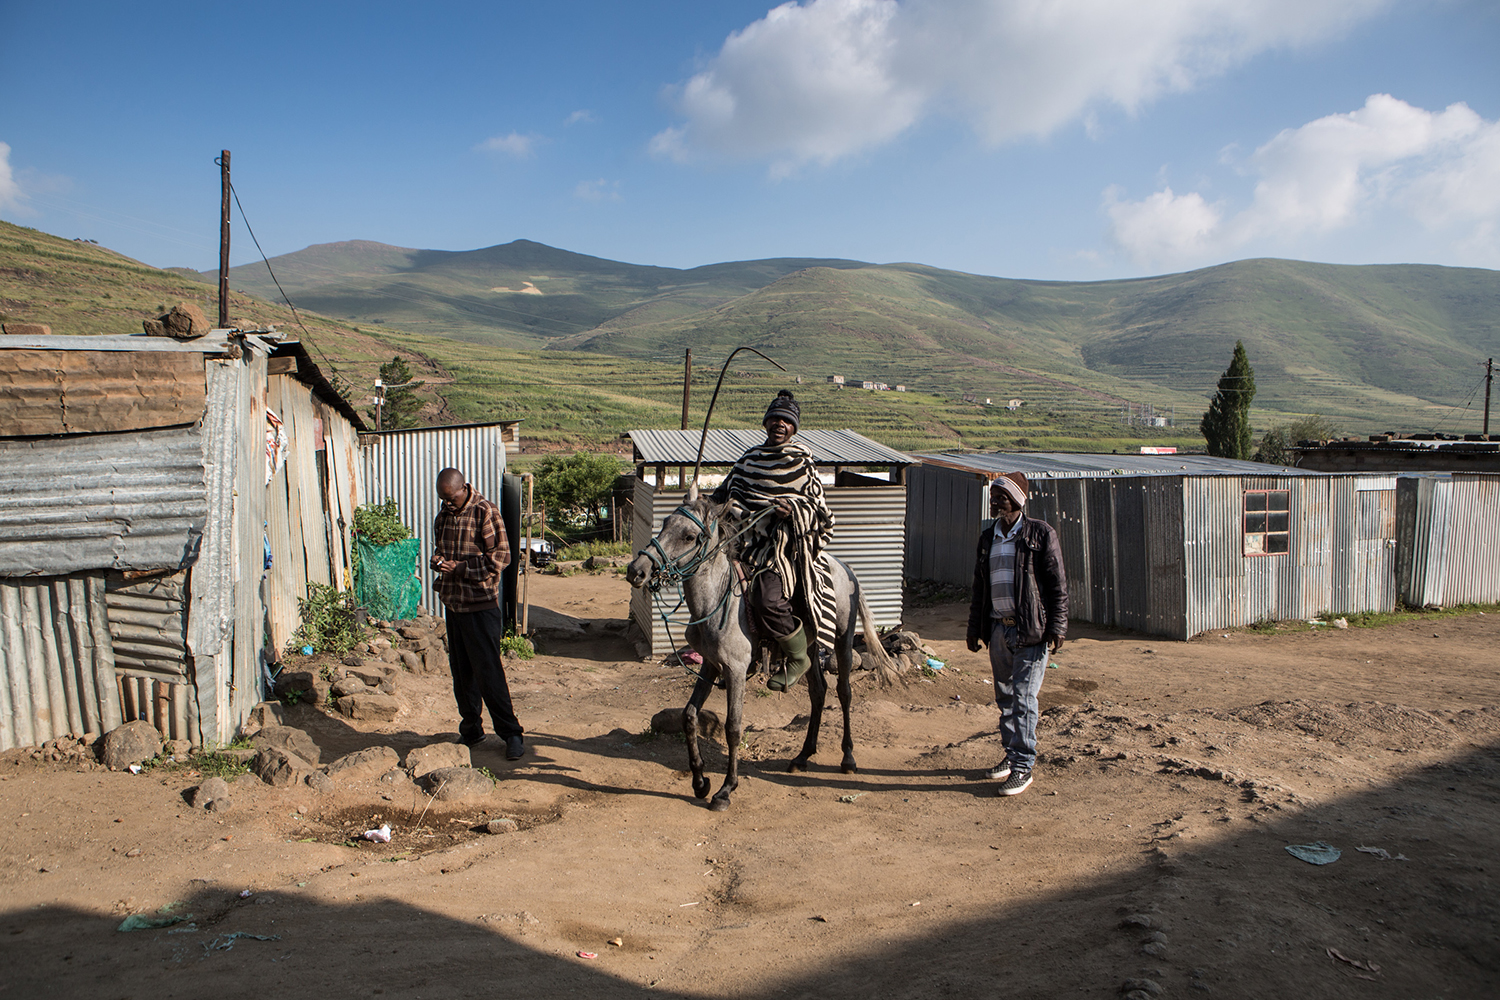 General View of life in the Lesotho Mountains (UNICEF/Schermbrucker)